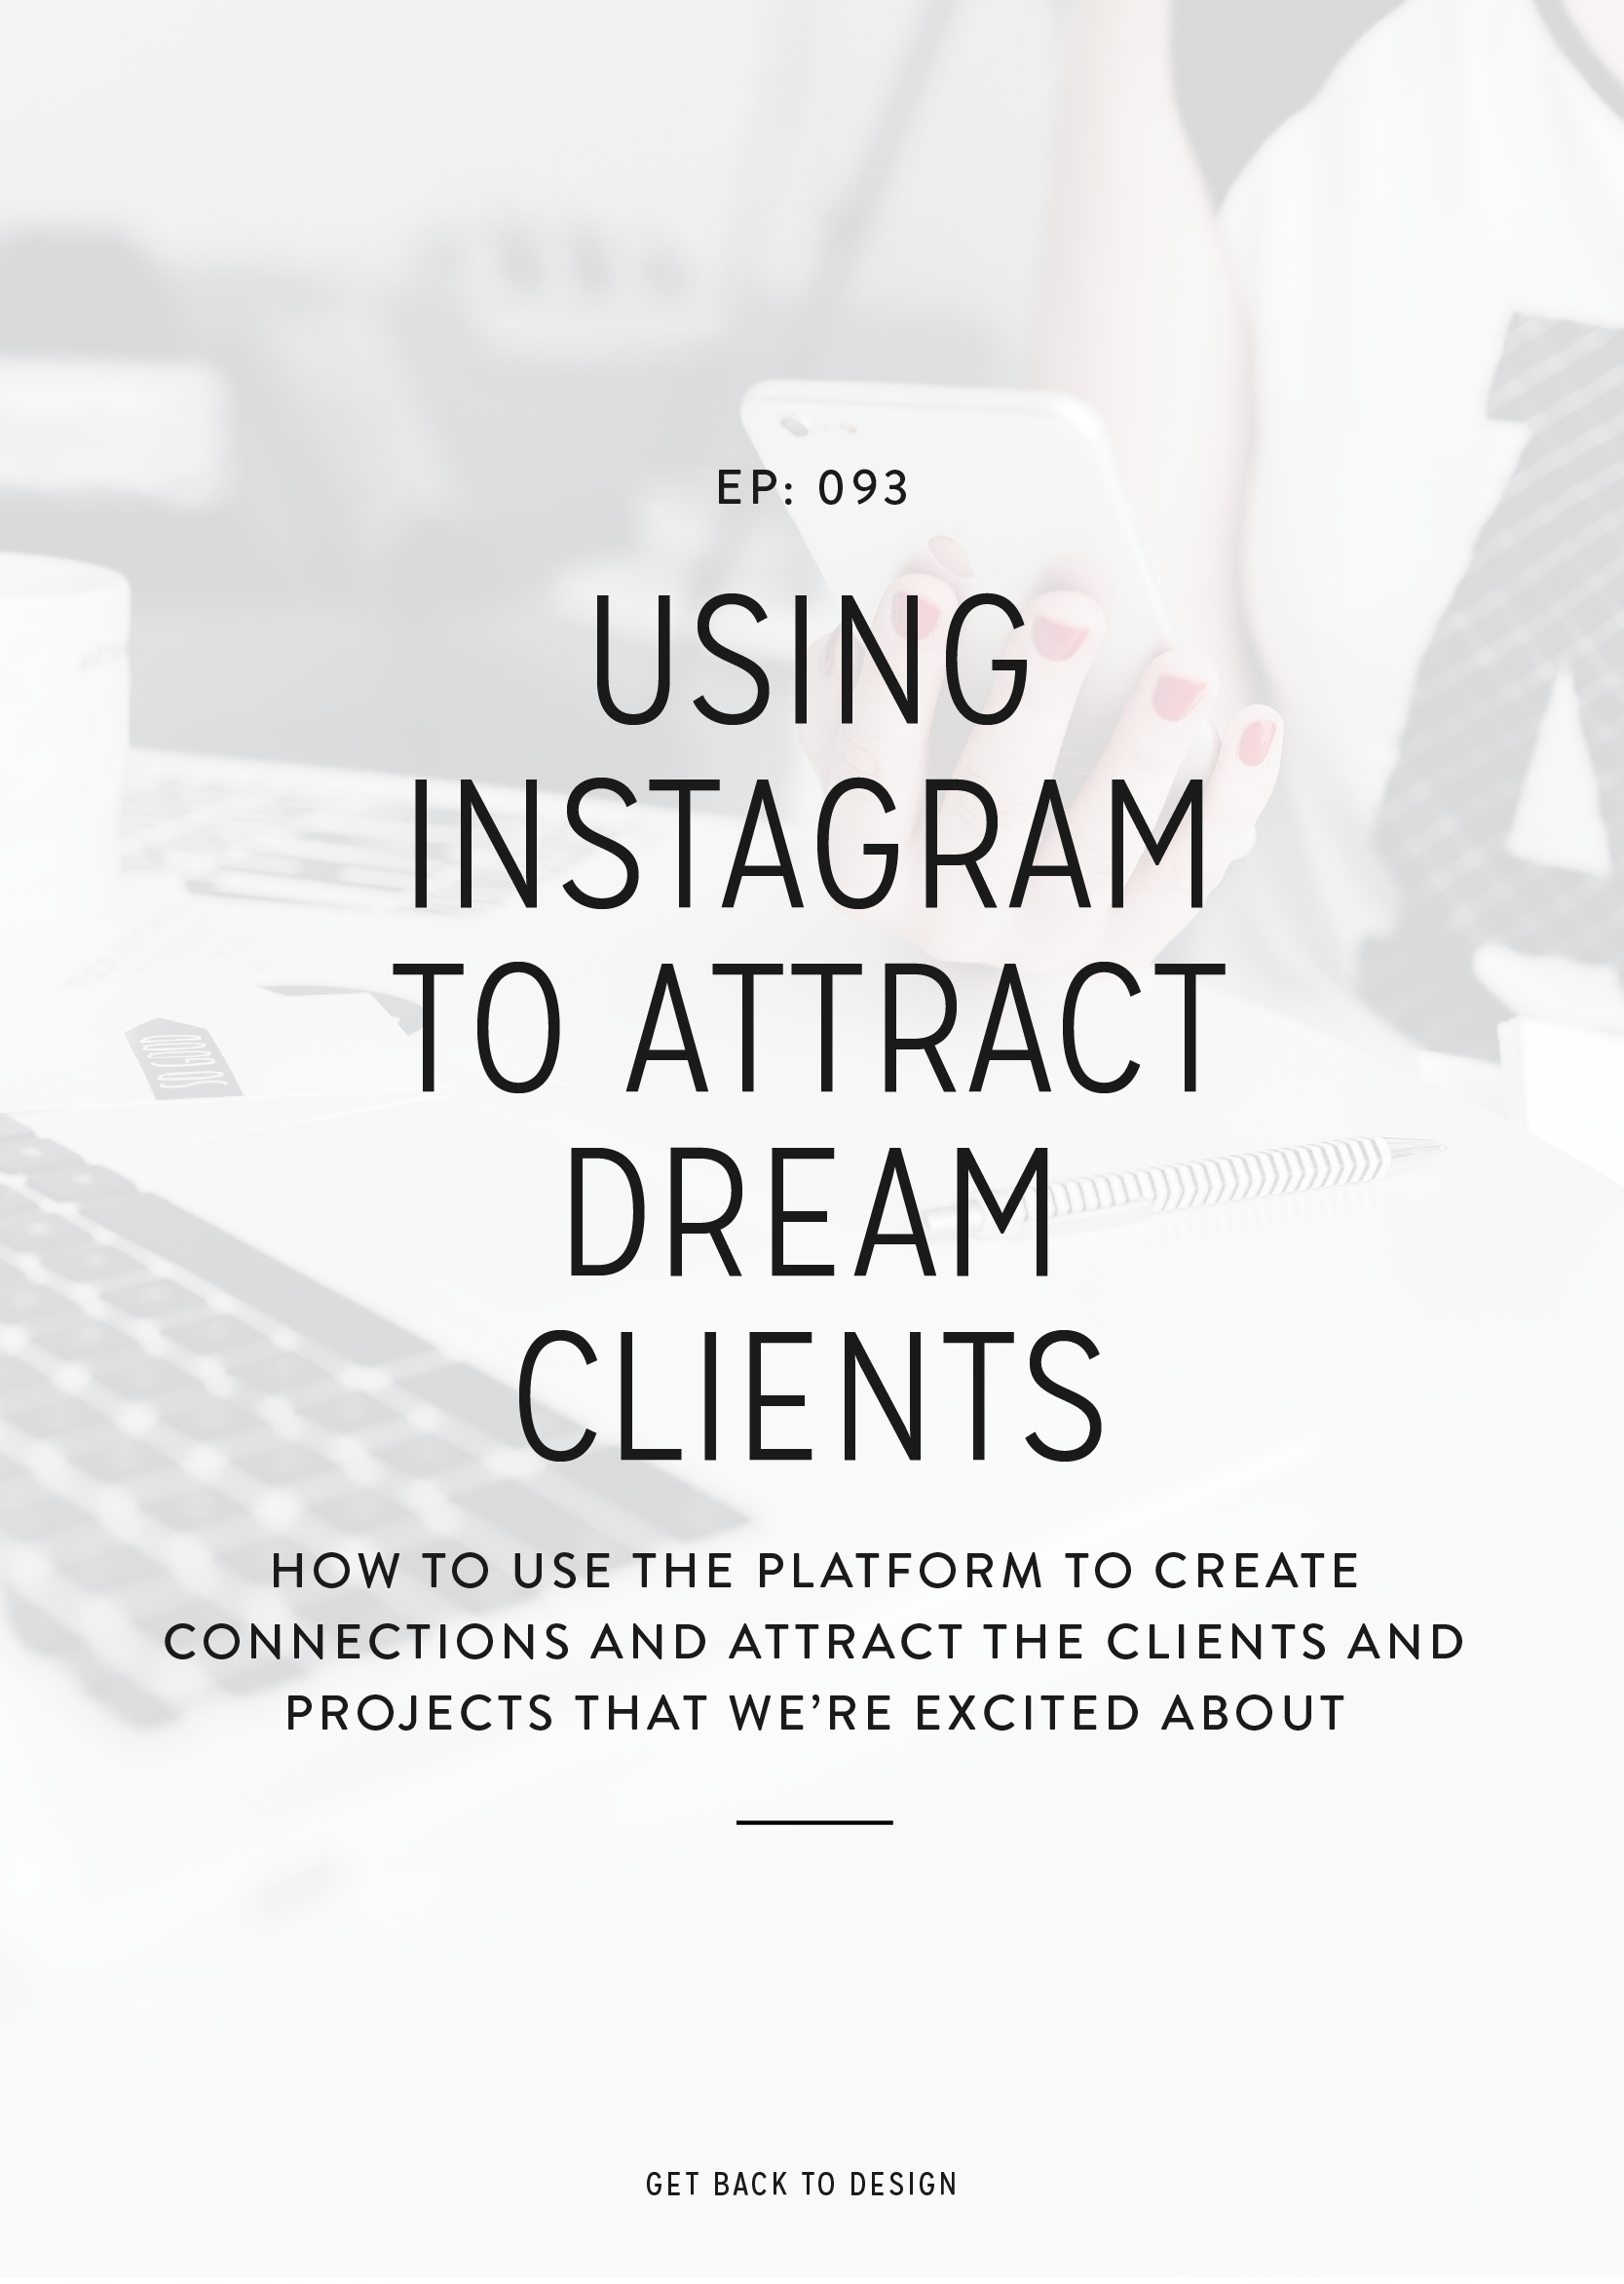 In this week's episode, we're finally sharing our tips for using Instagram to cultivate community and attract dream clients and projects that you're excited about!